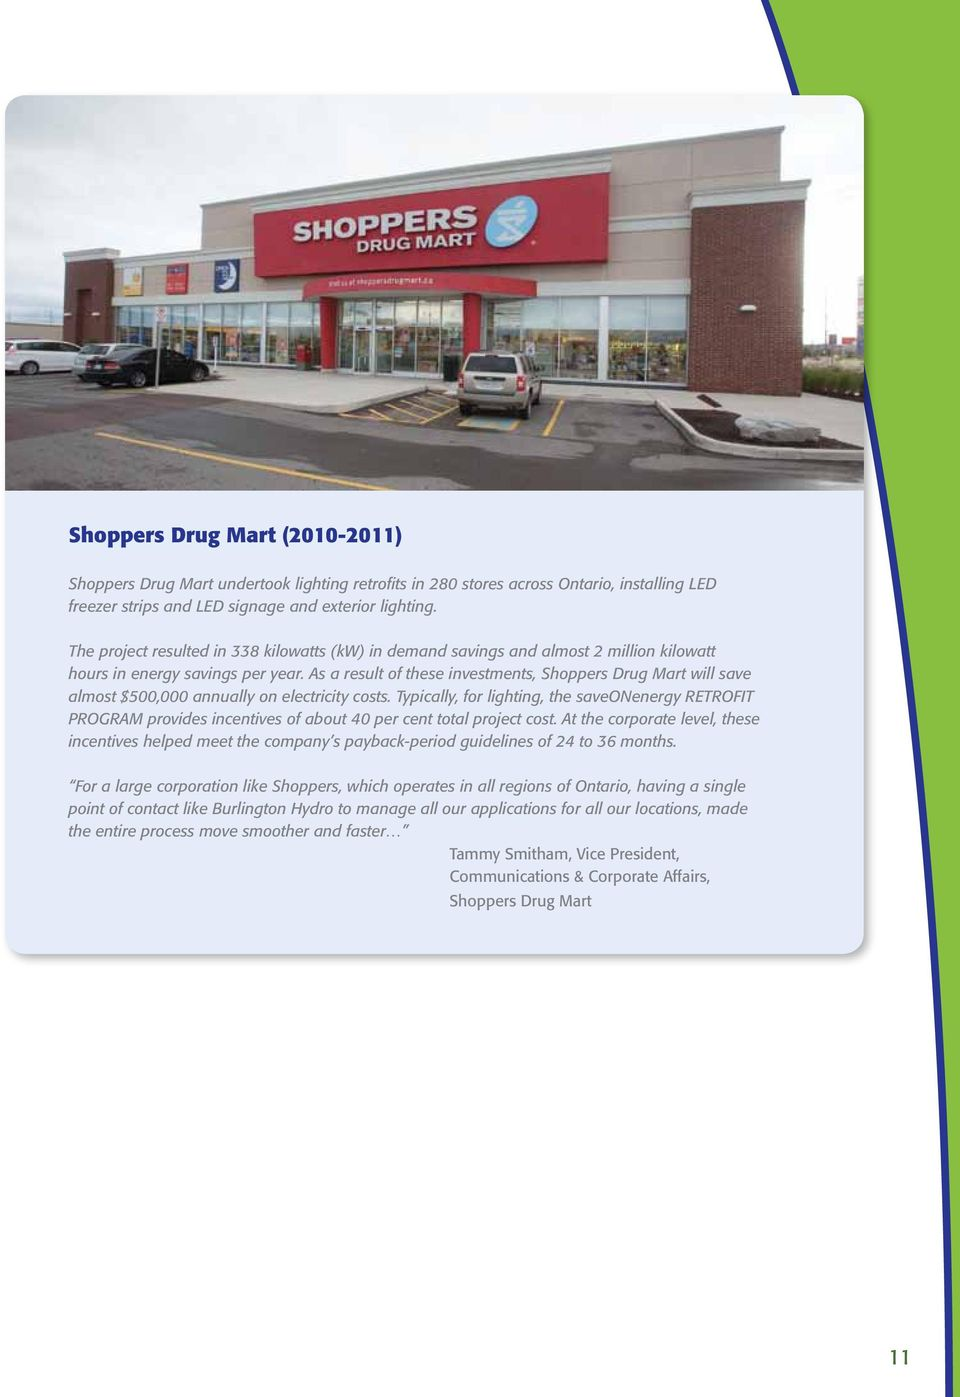 As a result of these investments, Shoppers Drug Mart will save almost $500,000 annually on electricity costs.